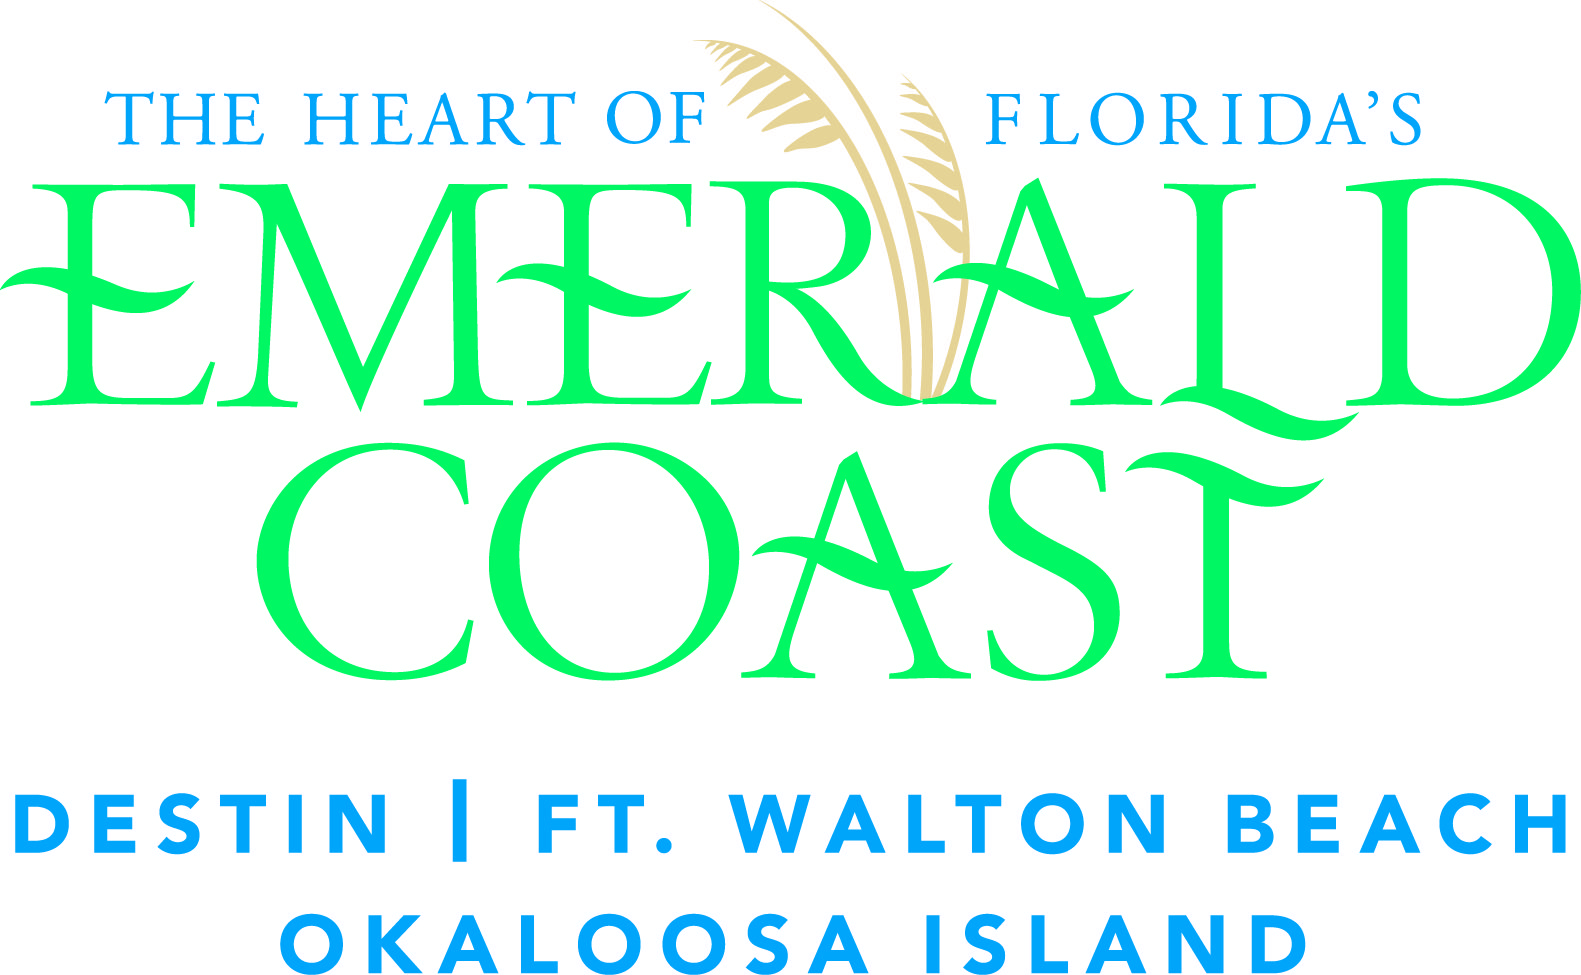 Heart of Florida's Emerald Coast Logo copy